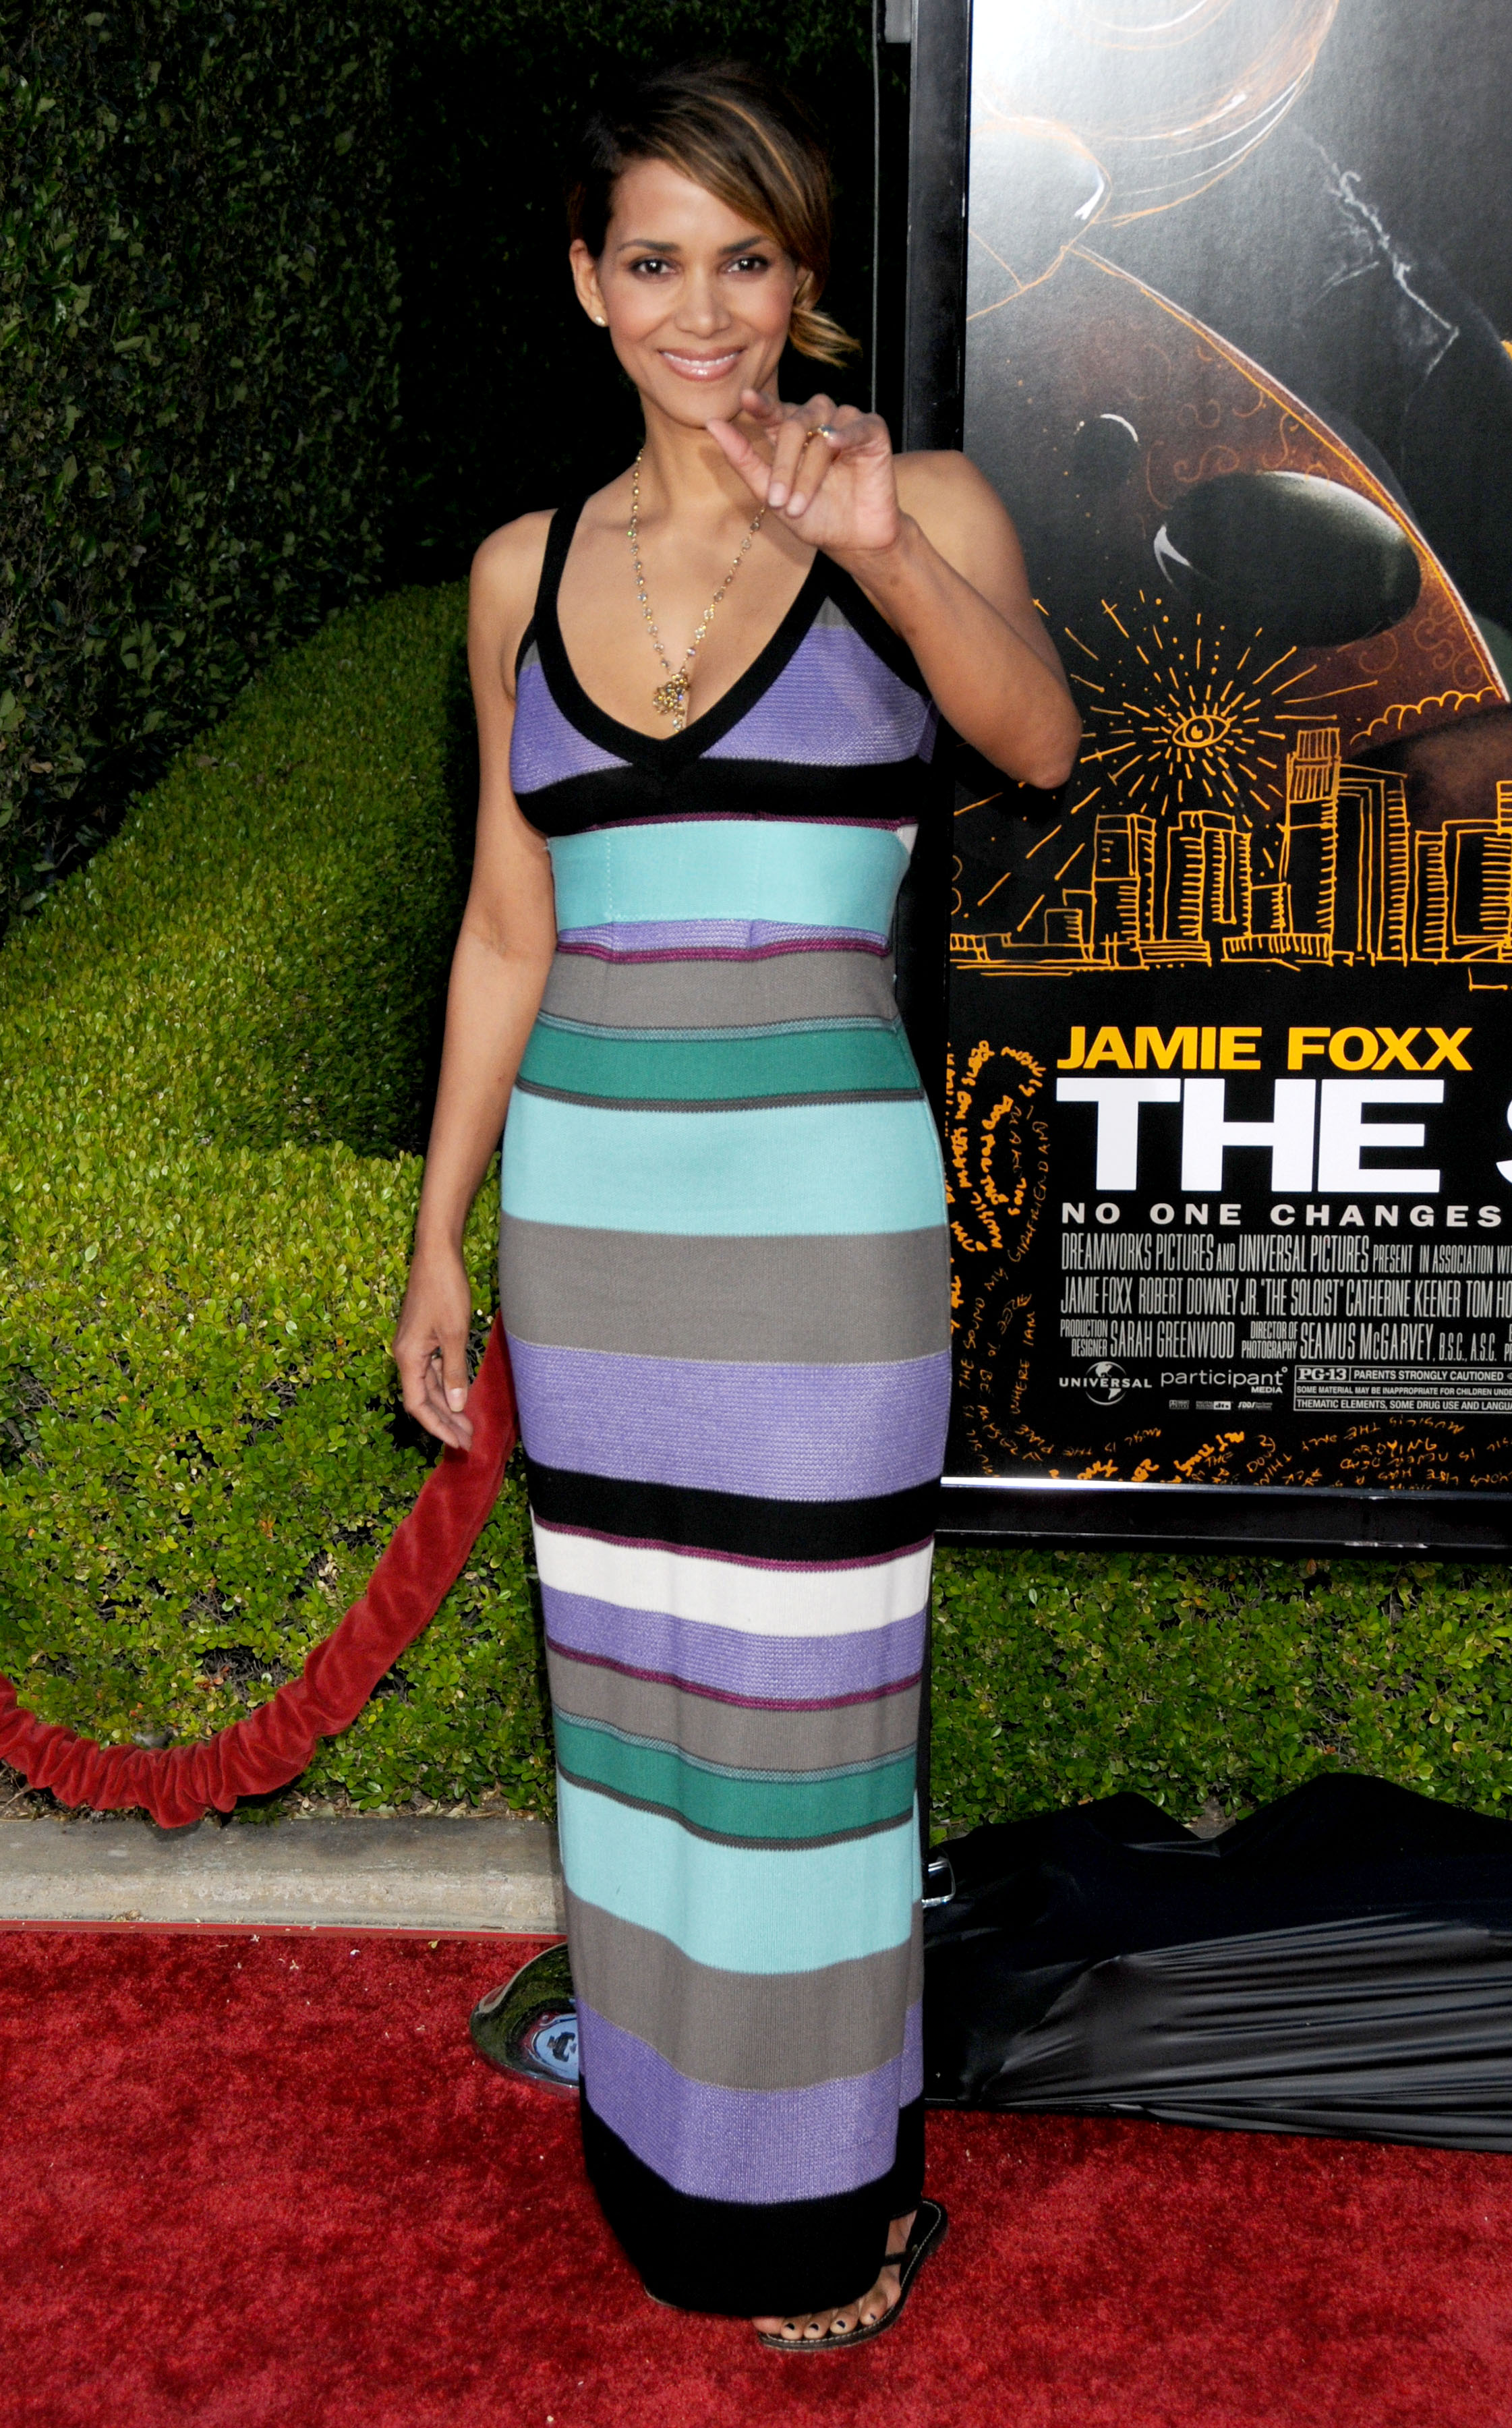 68370_Halle_Berry_The_Soloist_premiere_in_Los_Angeles_35_122_95lo.jpg